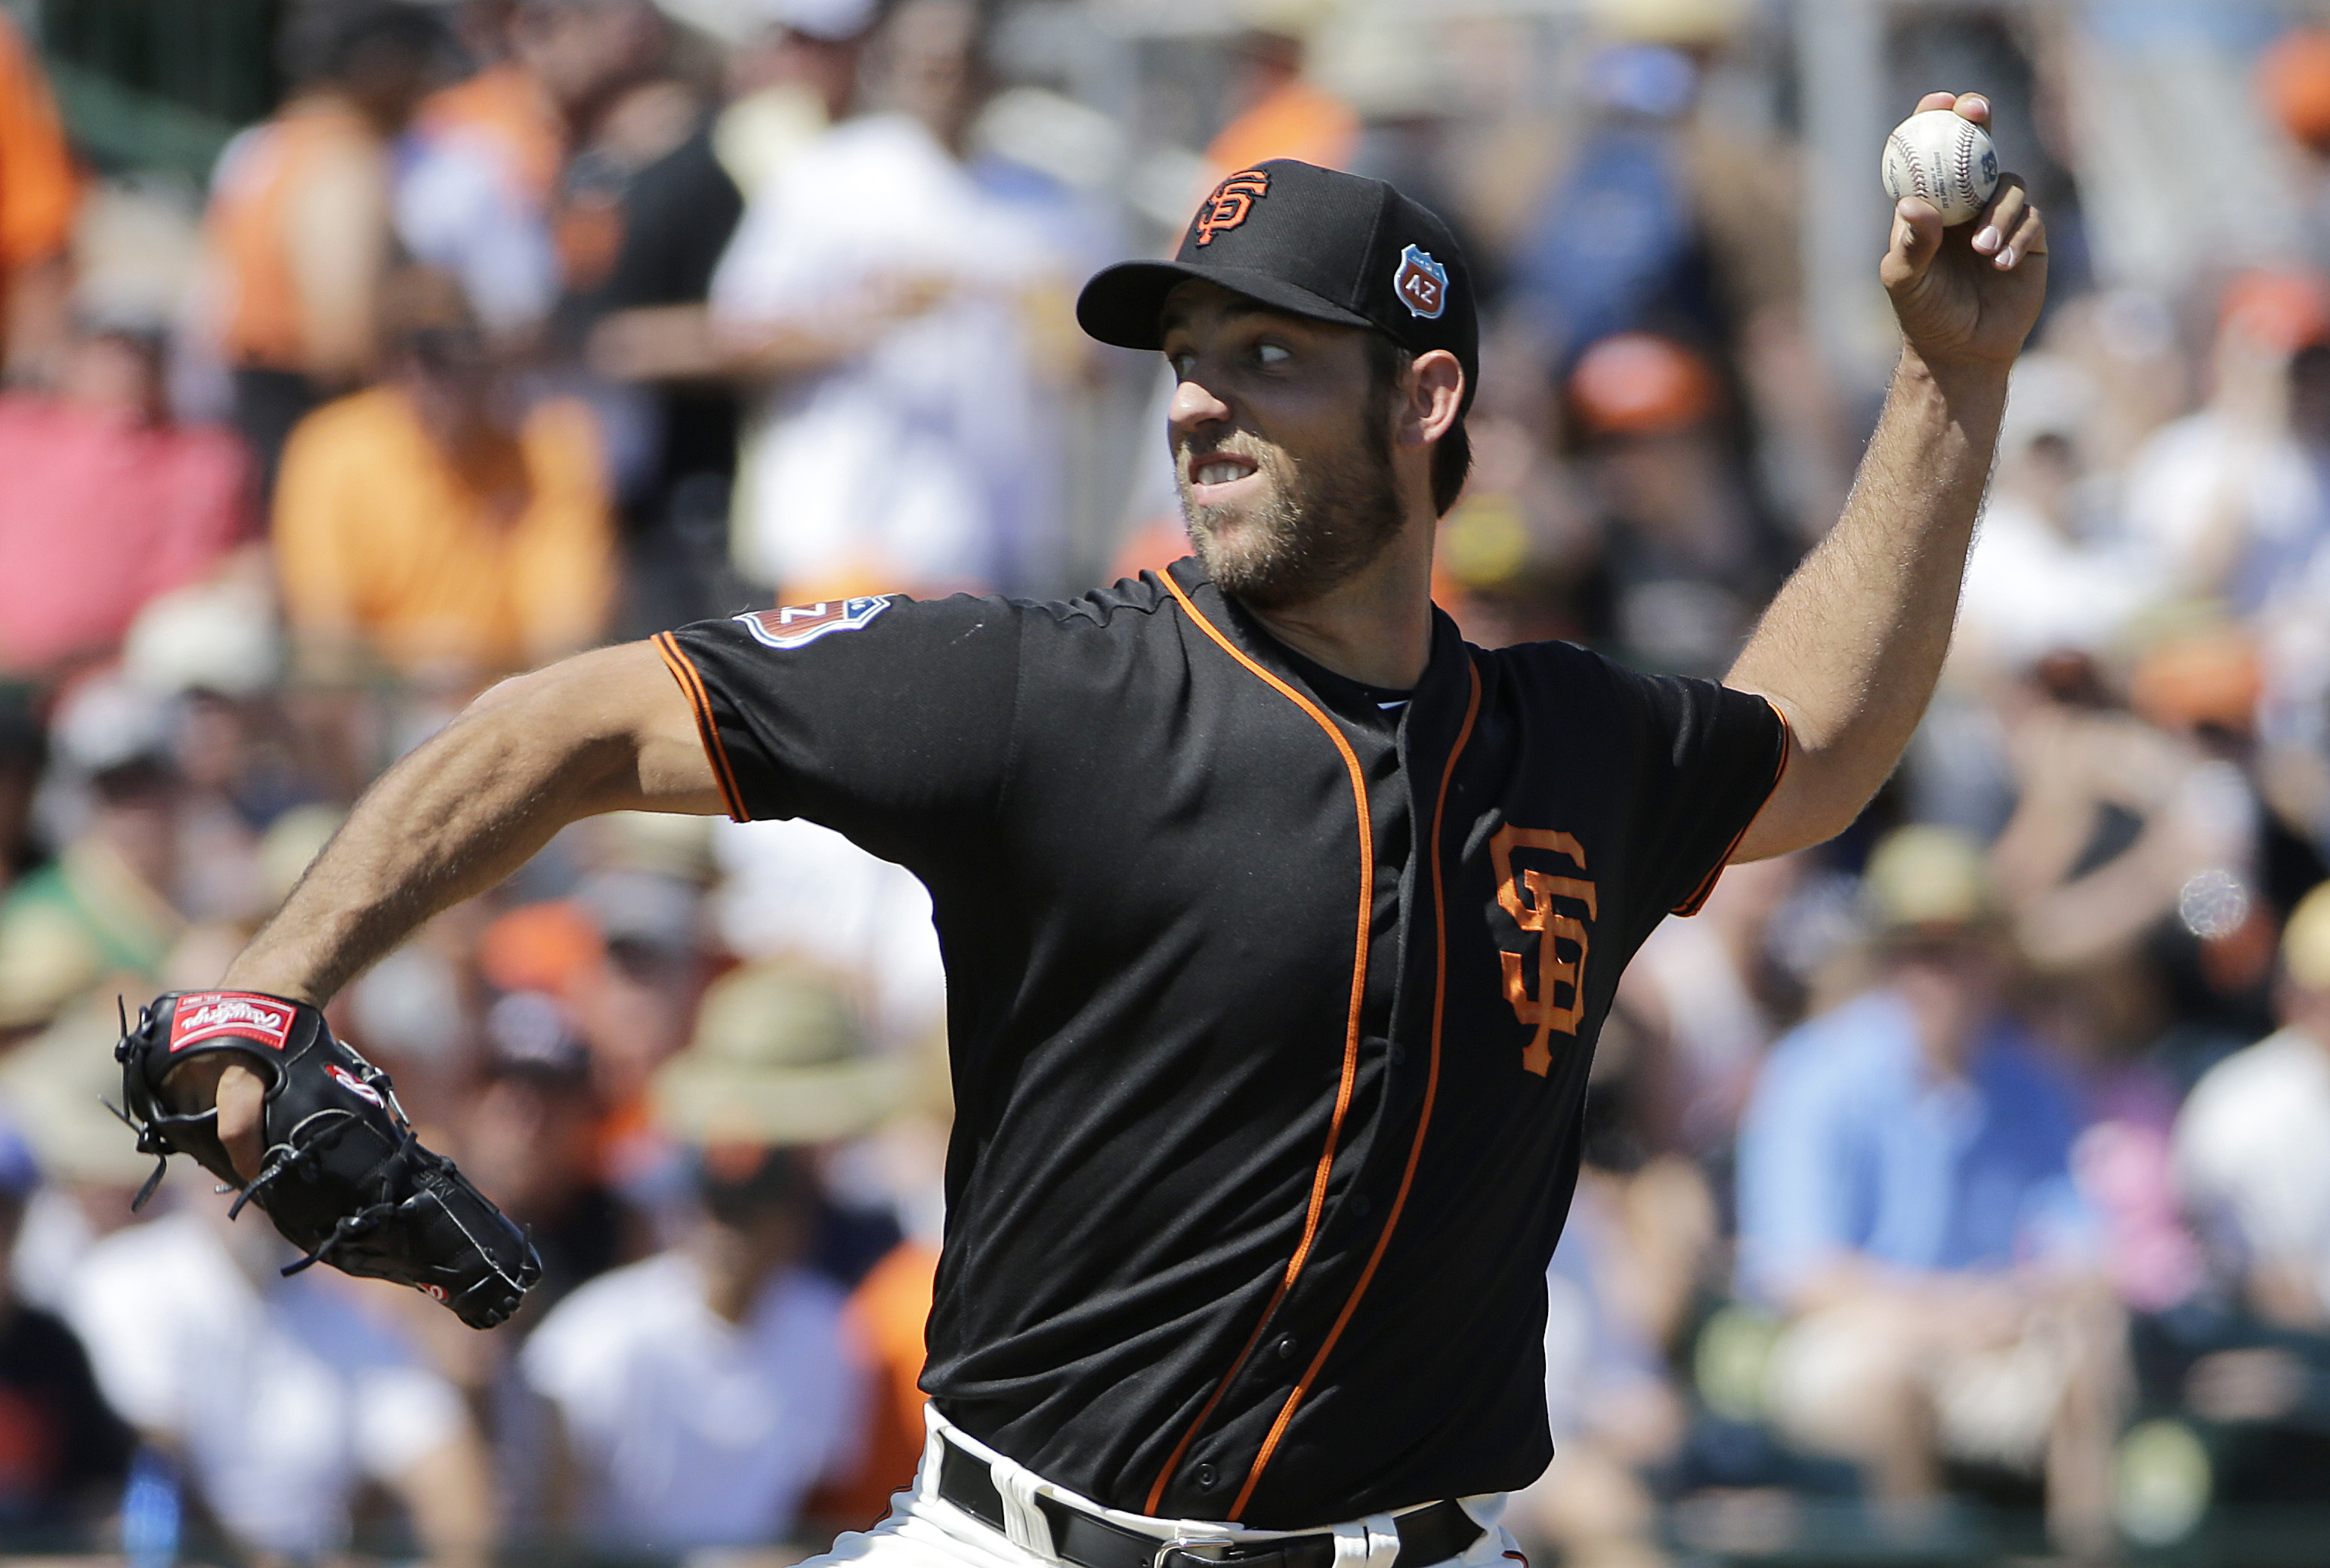 San Francisco Giants starting pitcher Madison Bumgarner throws during the first inning of a spring training baseball game against the Oakland Athletics in Scottsdale, Ariz., Saturday, March 19, 2016. (AP Photo/Jeff Chiu)